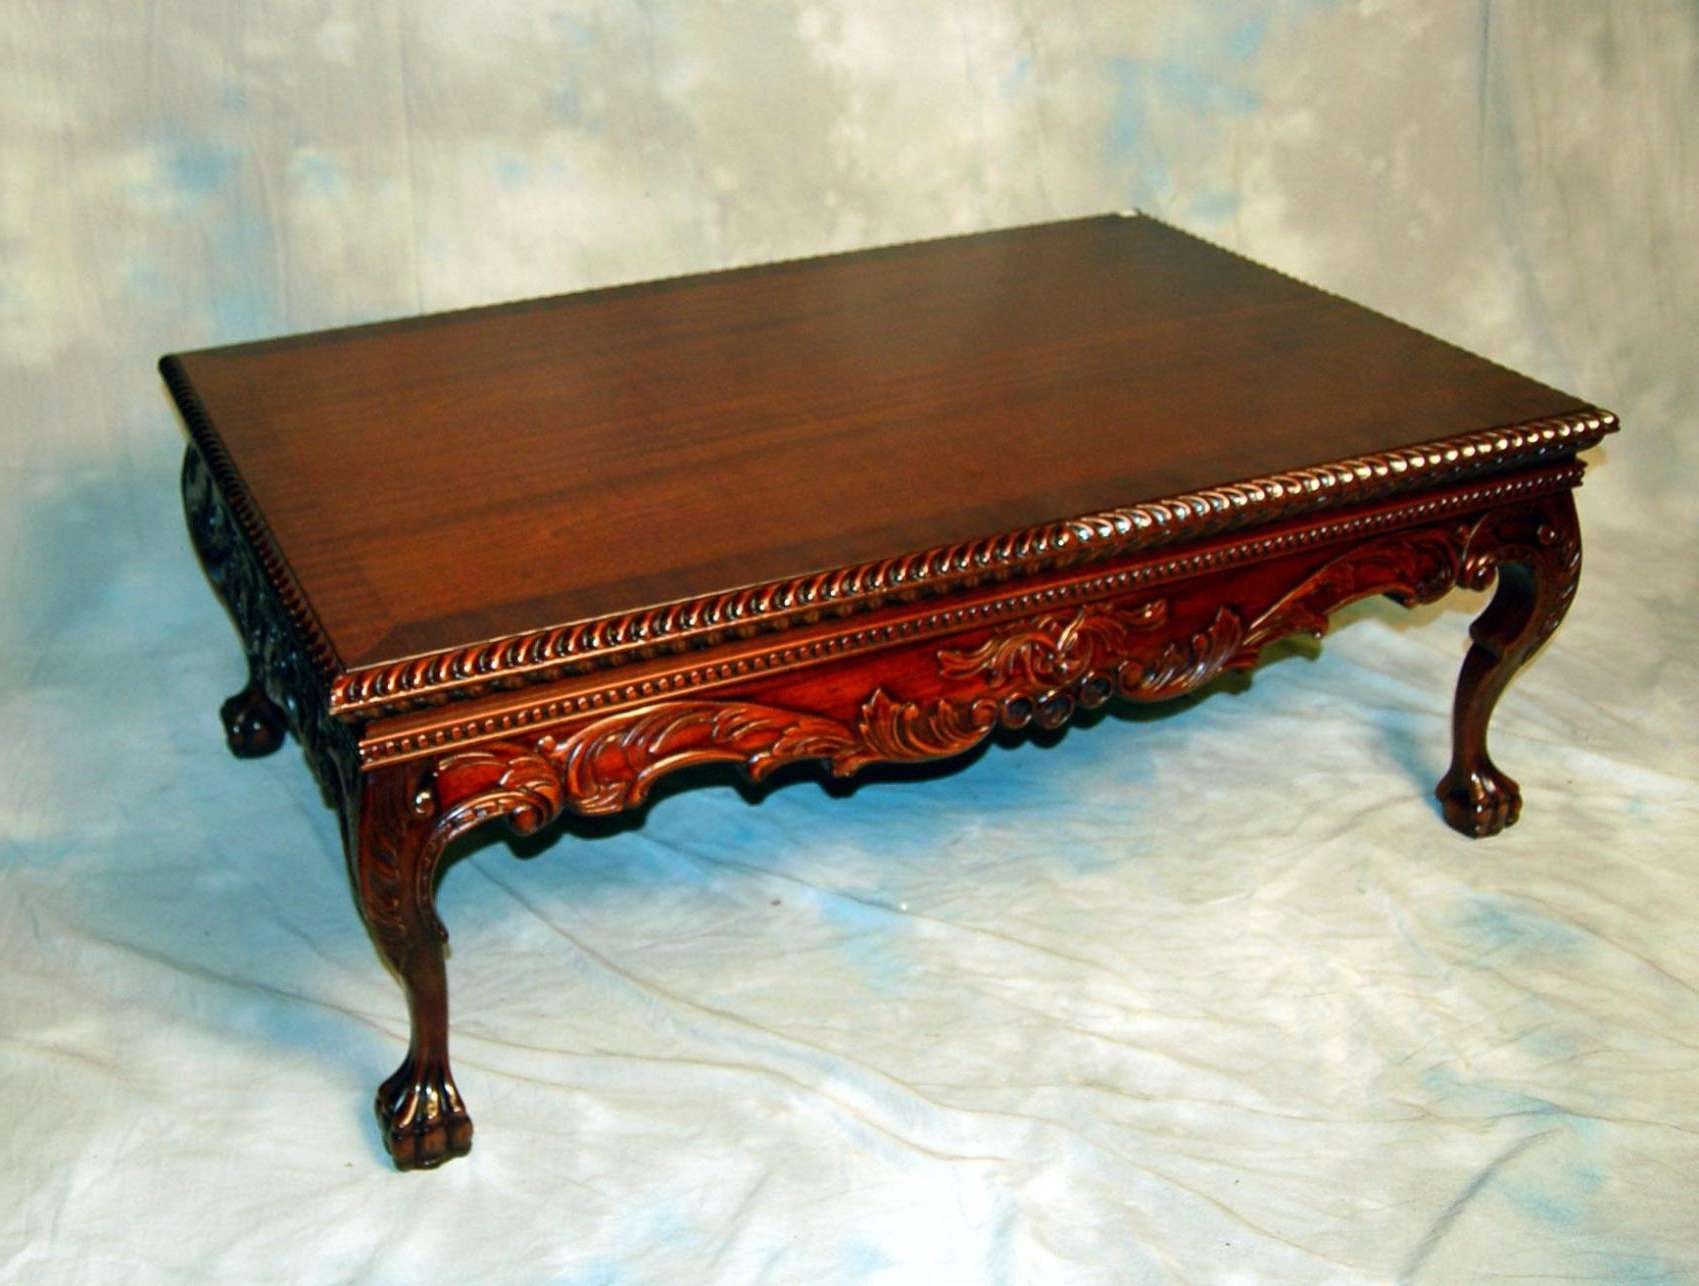 Favorite Mahogany Coffee Tables Within Coffee Table, Mahogany Coffee Table Antique Mahogany Coffee Table (View 14 of 20)